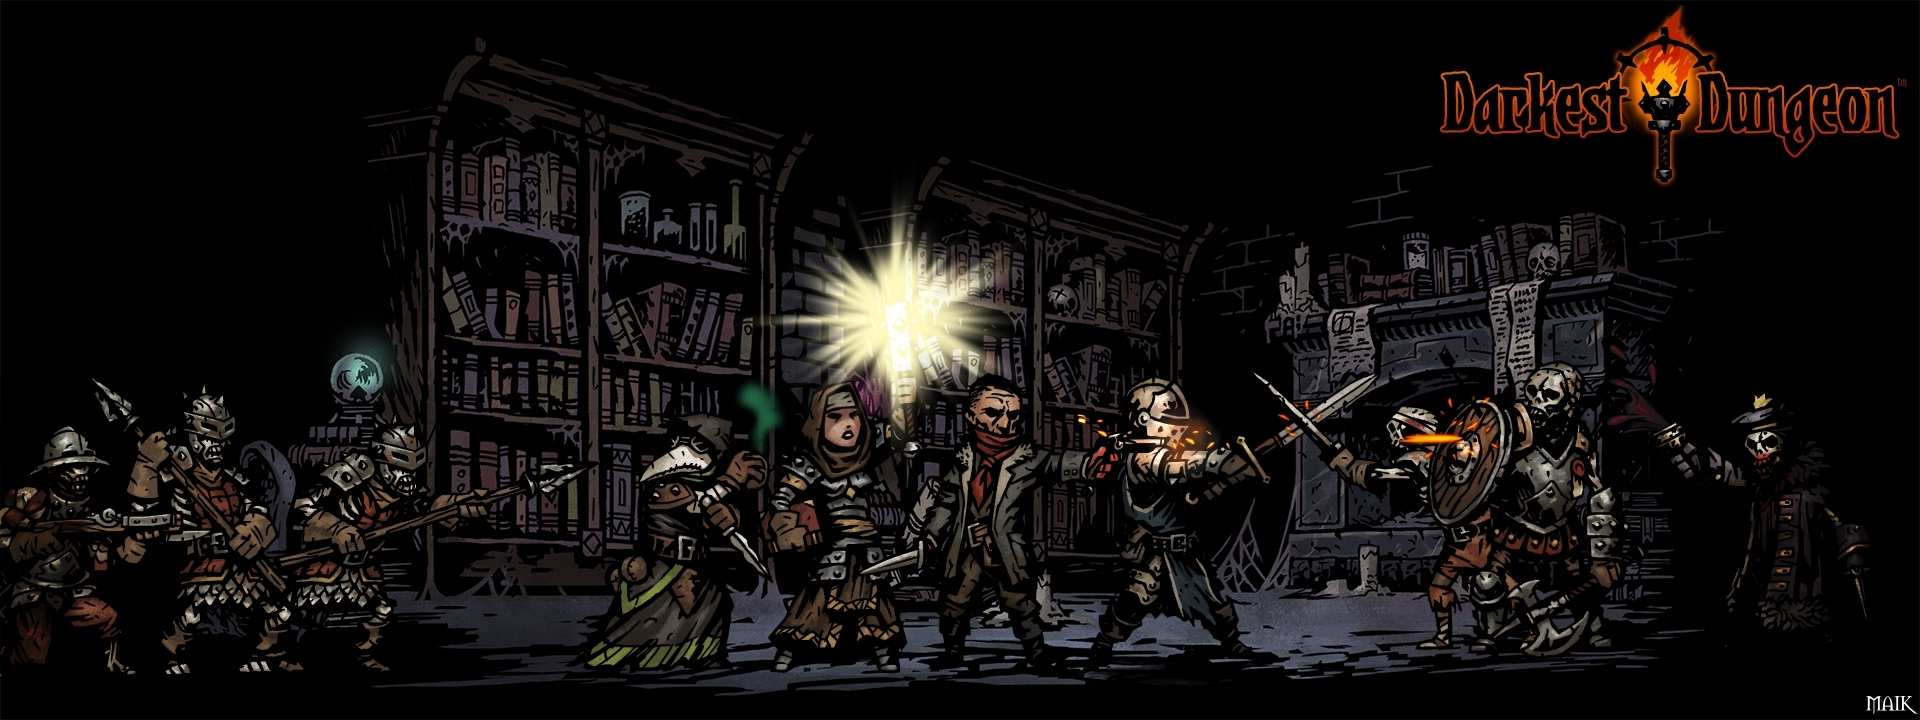 1445357795_Darkest Dungion WallPaper Library1920x720 (logo) STEAM.jpg - Darkest Dungeon